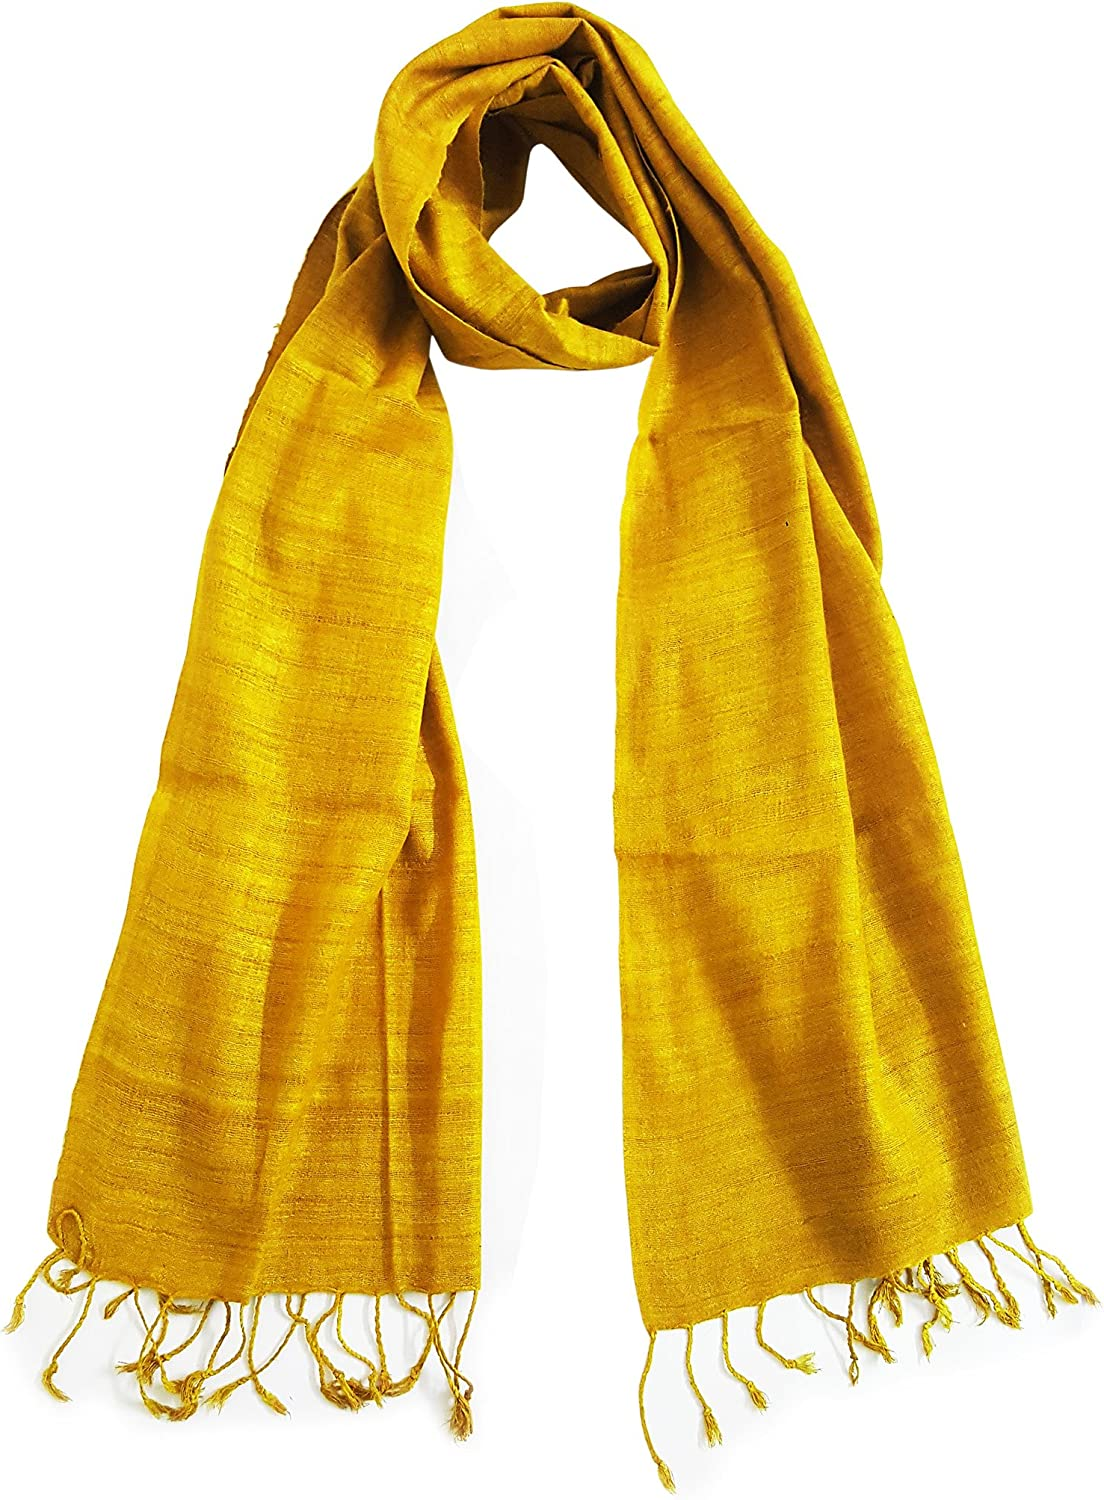 Mehrunnisa Ahimsa Peace Eri Silk Stole Large Scarf Wrap In Organic colors